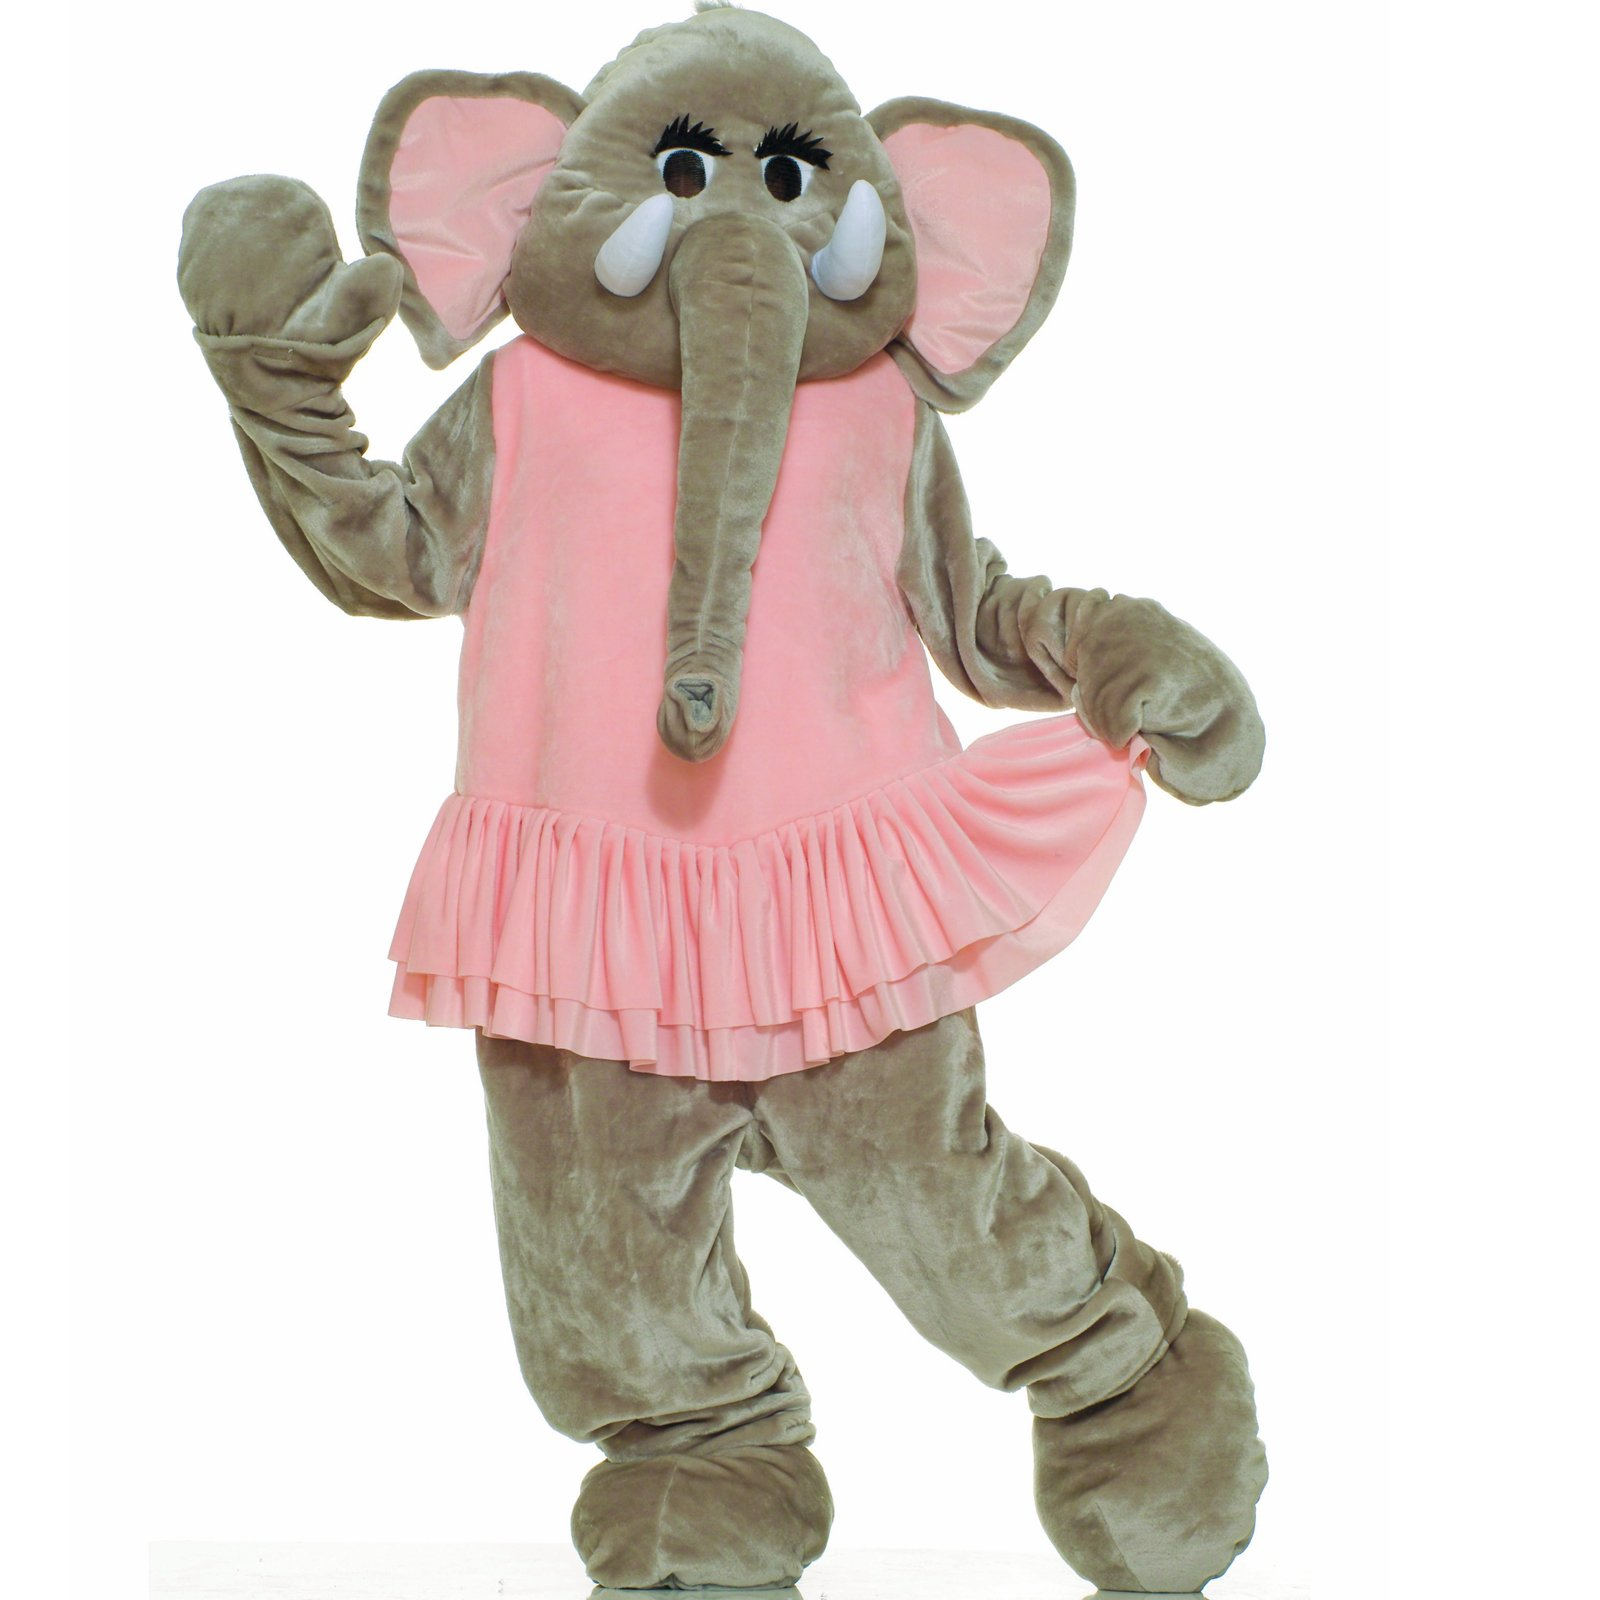 Elephant Dancing Mascot Adult Halloween Costume, Size: Men's - One Size